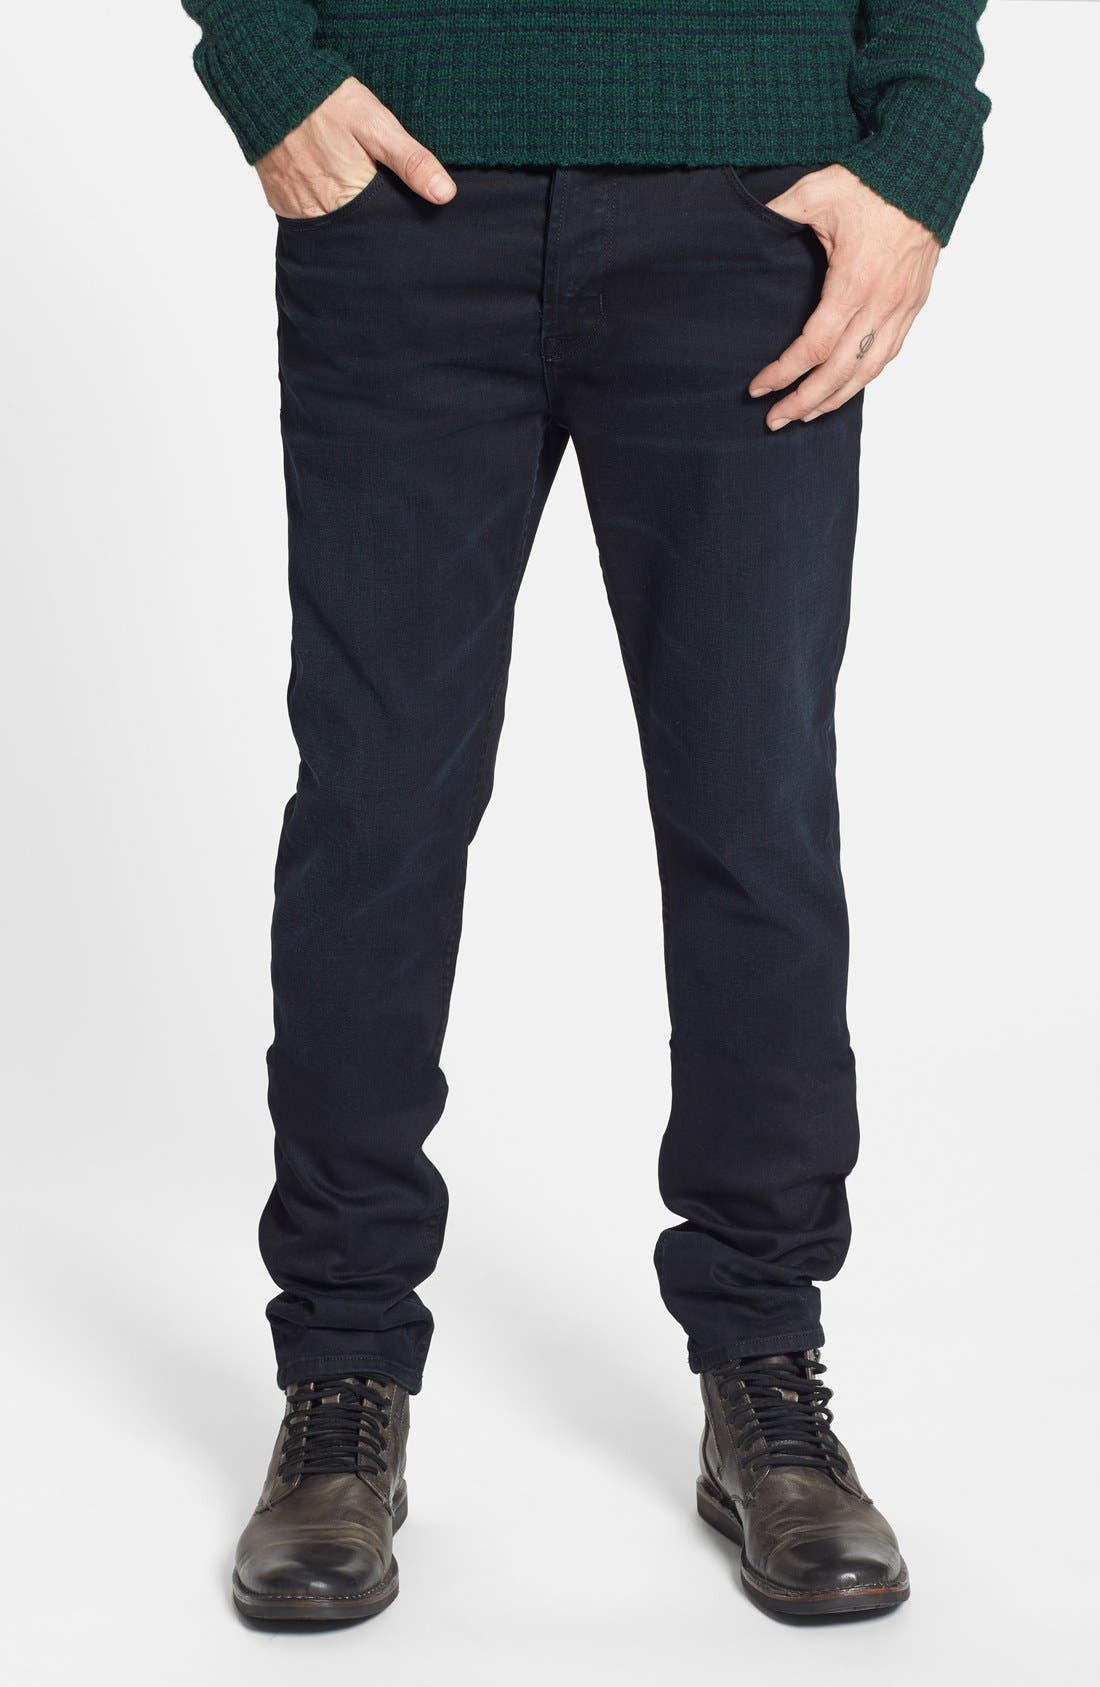 Main Image - Hudson Jeans 'Sartor' Slouchy Skinny Fit Jeans (Sanction)